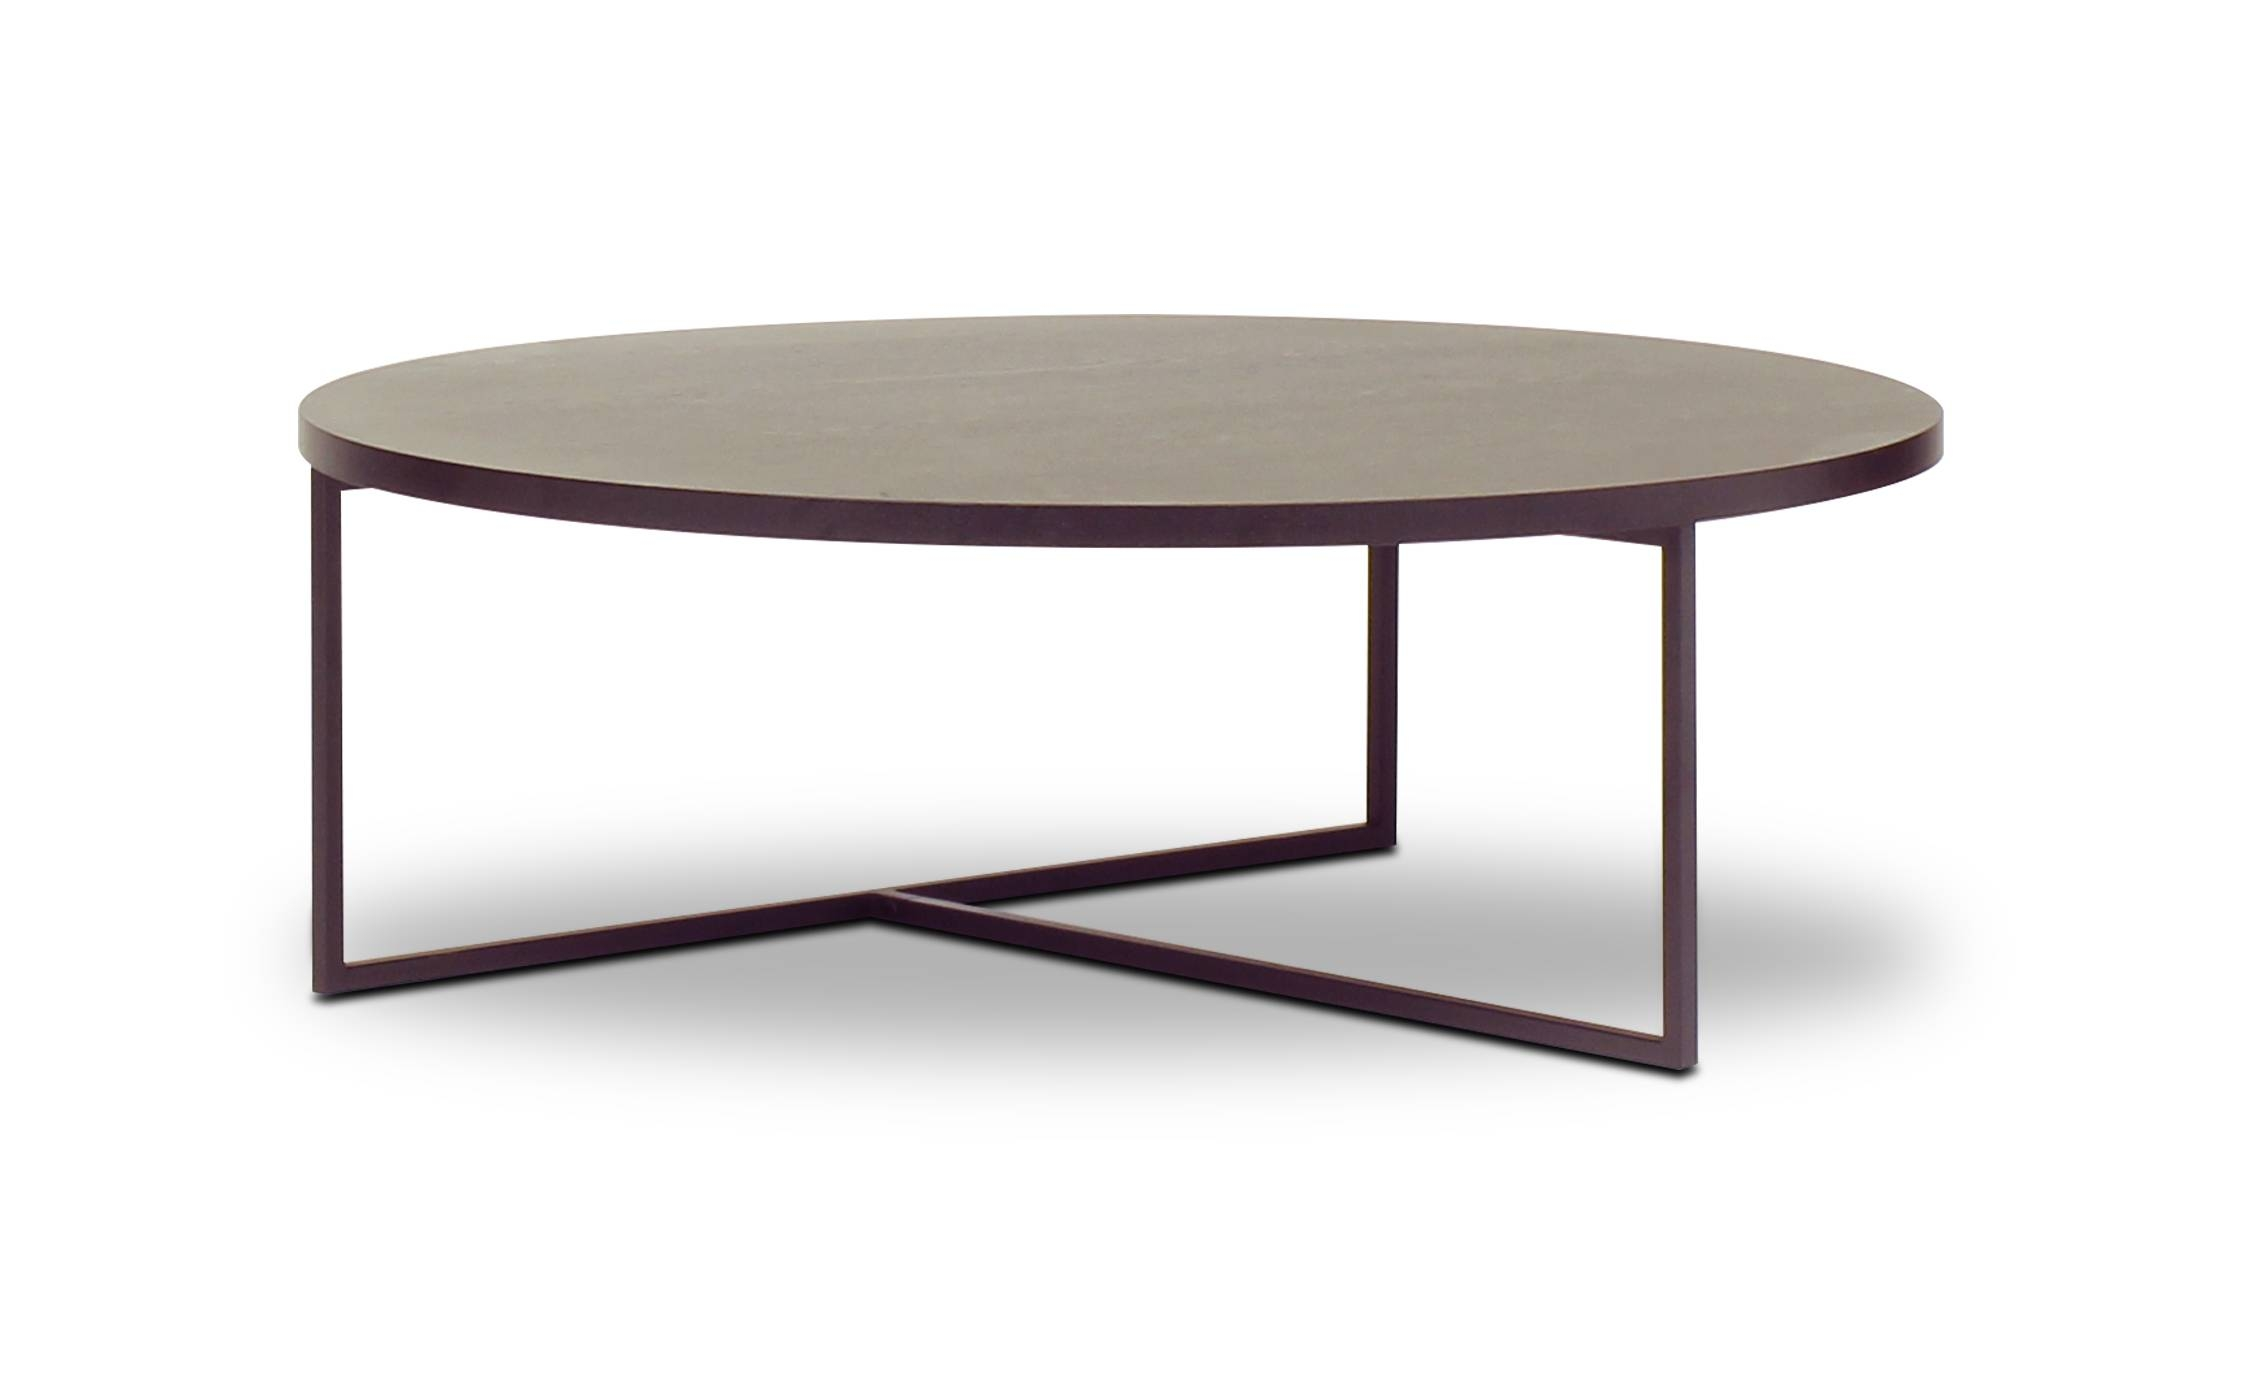 15 Collection of Round Metal Coffee Tables